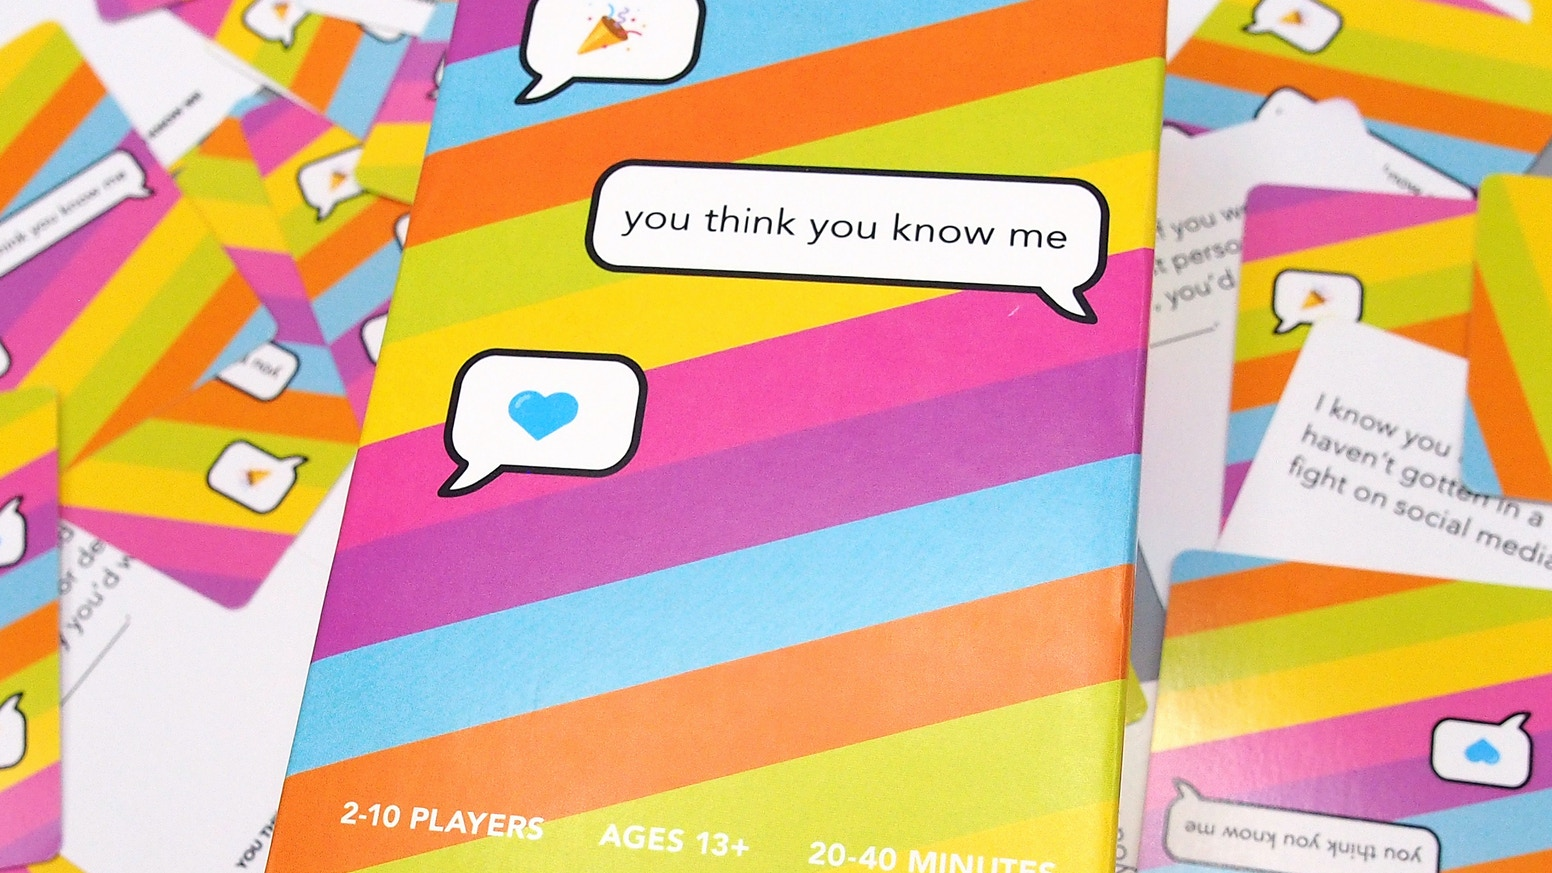 How well do you know your friends, family, coworkers, or partners? A colorful new card game to deepen the relationships around us.